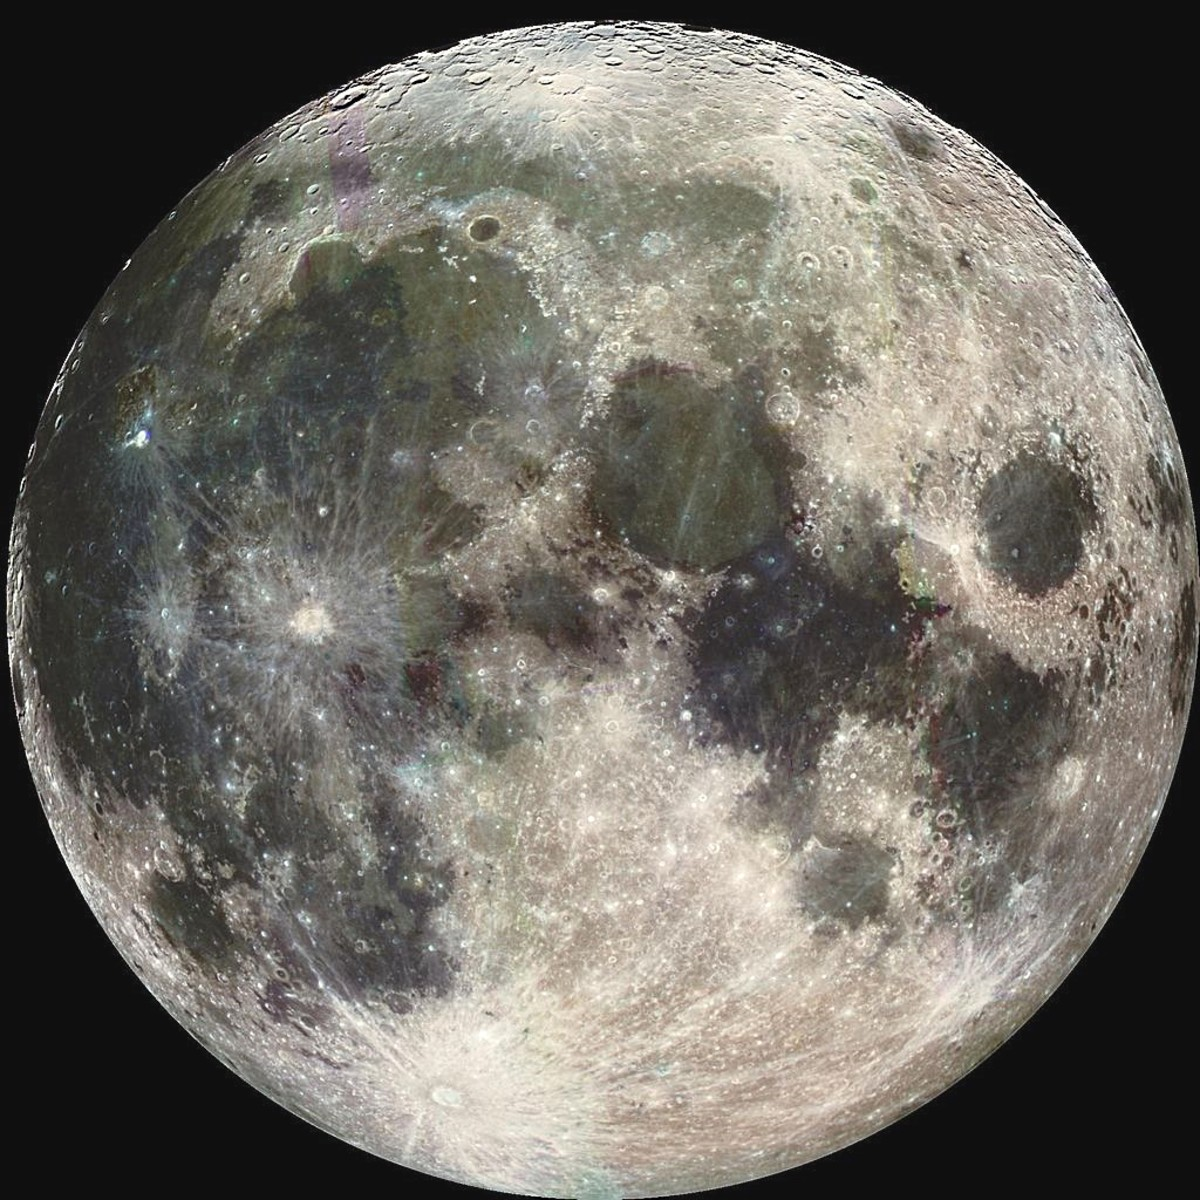 The moon as photographed from the Galileo spacecraft; photograph enhanced by the near-infrared capabilities of the camera